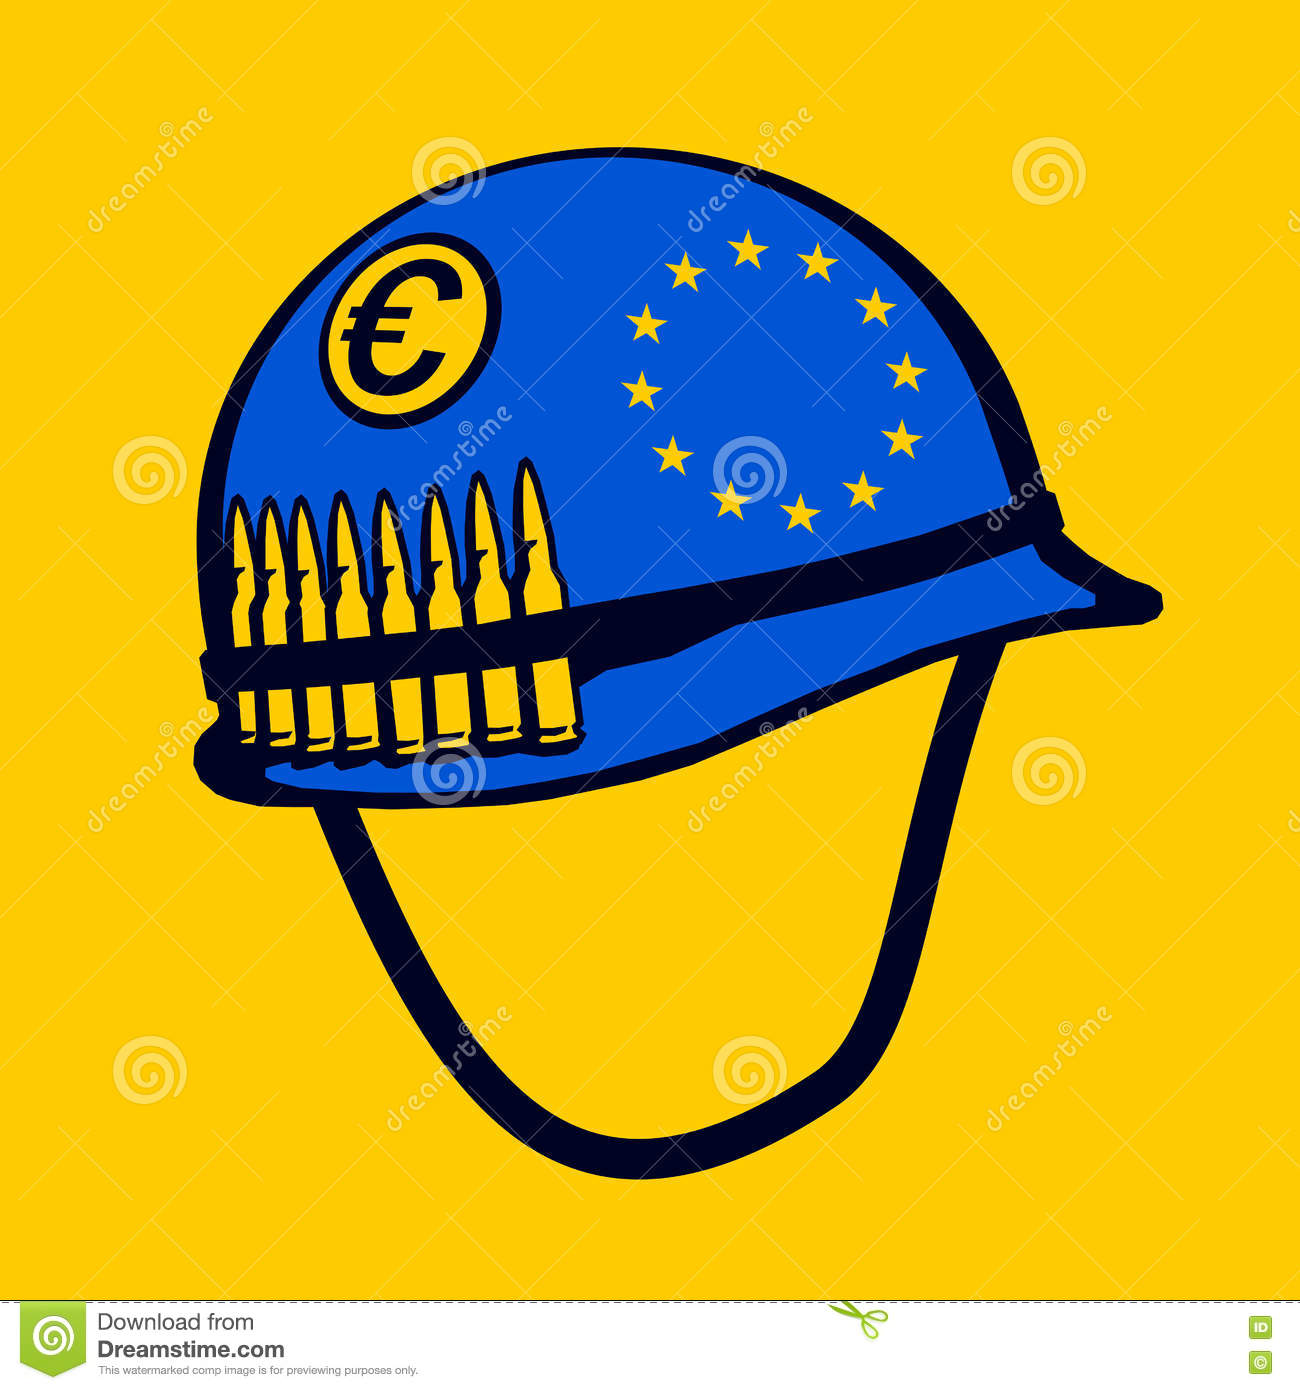 European Union Army Stock Vector Illustration Of Blue 77564650